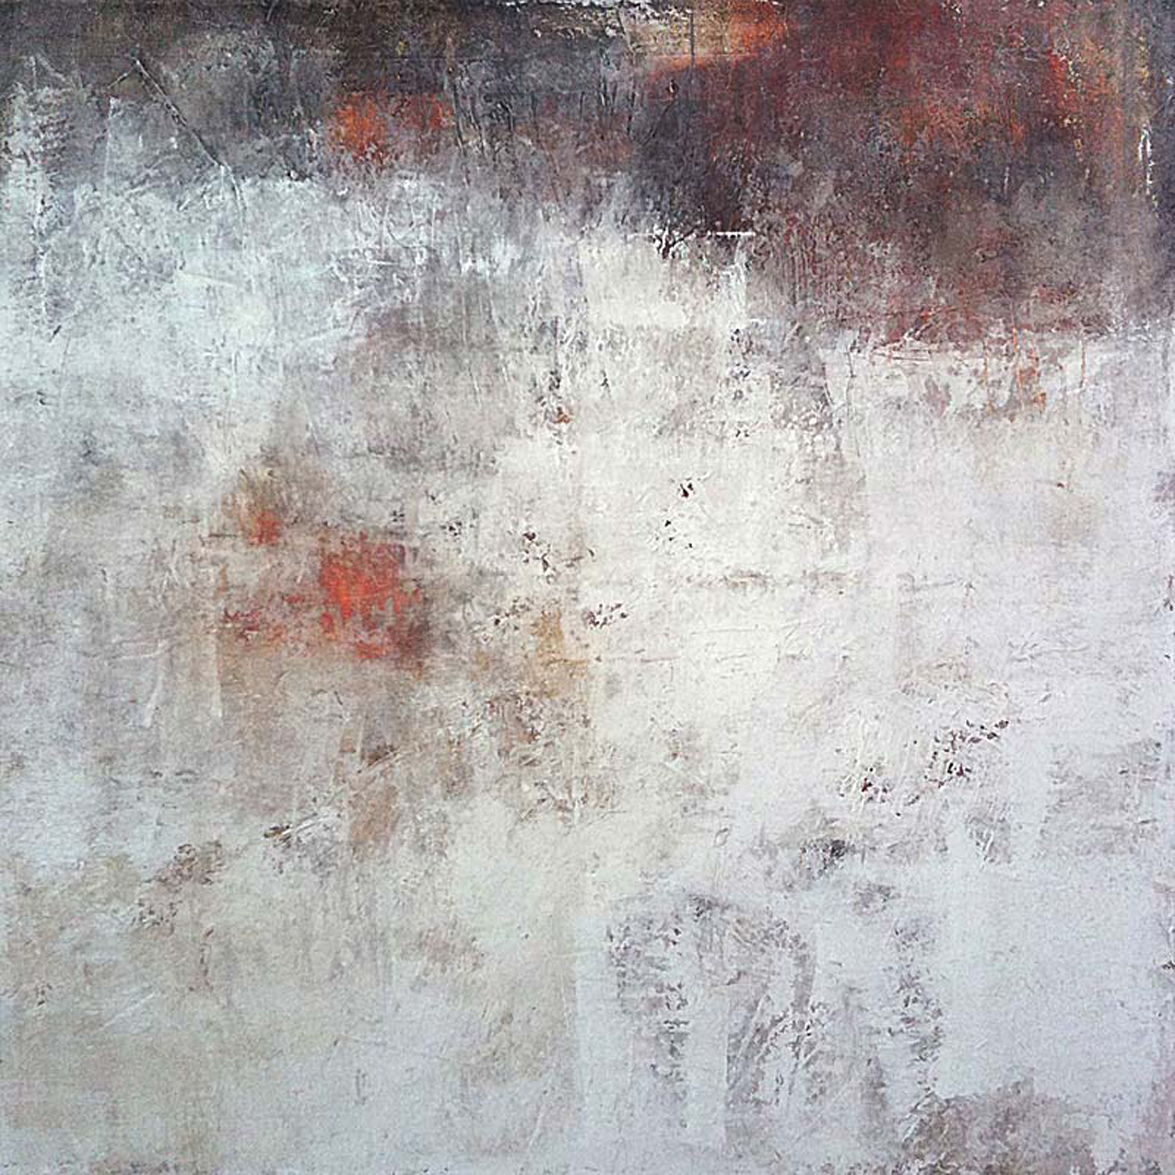 Berlin Muenzstrasse, 2011, 04, 100 x 100 cm, Acrylic on Canvas